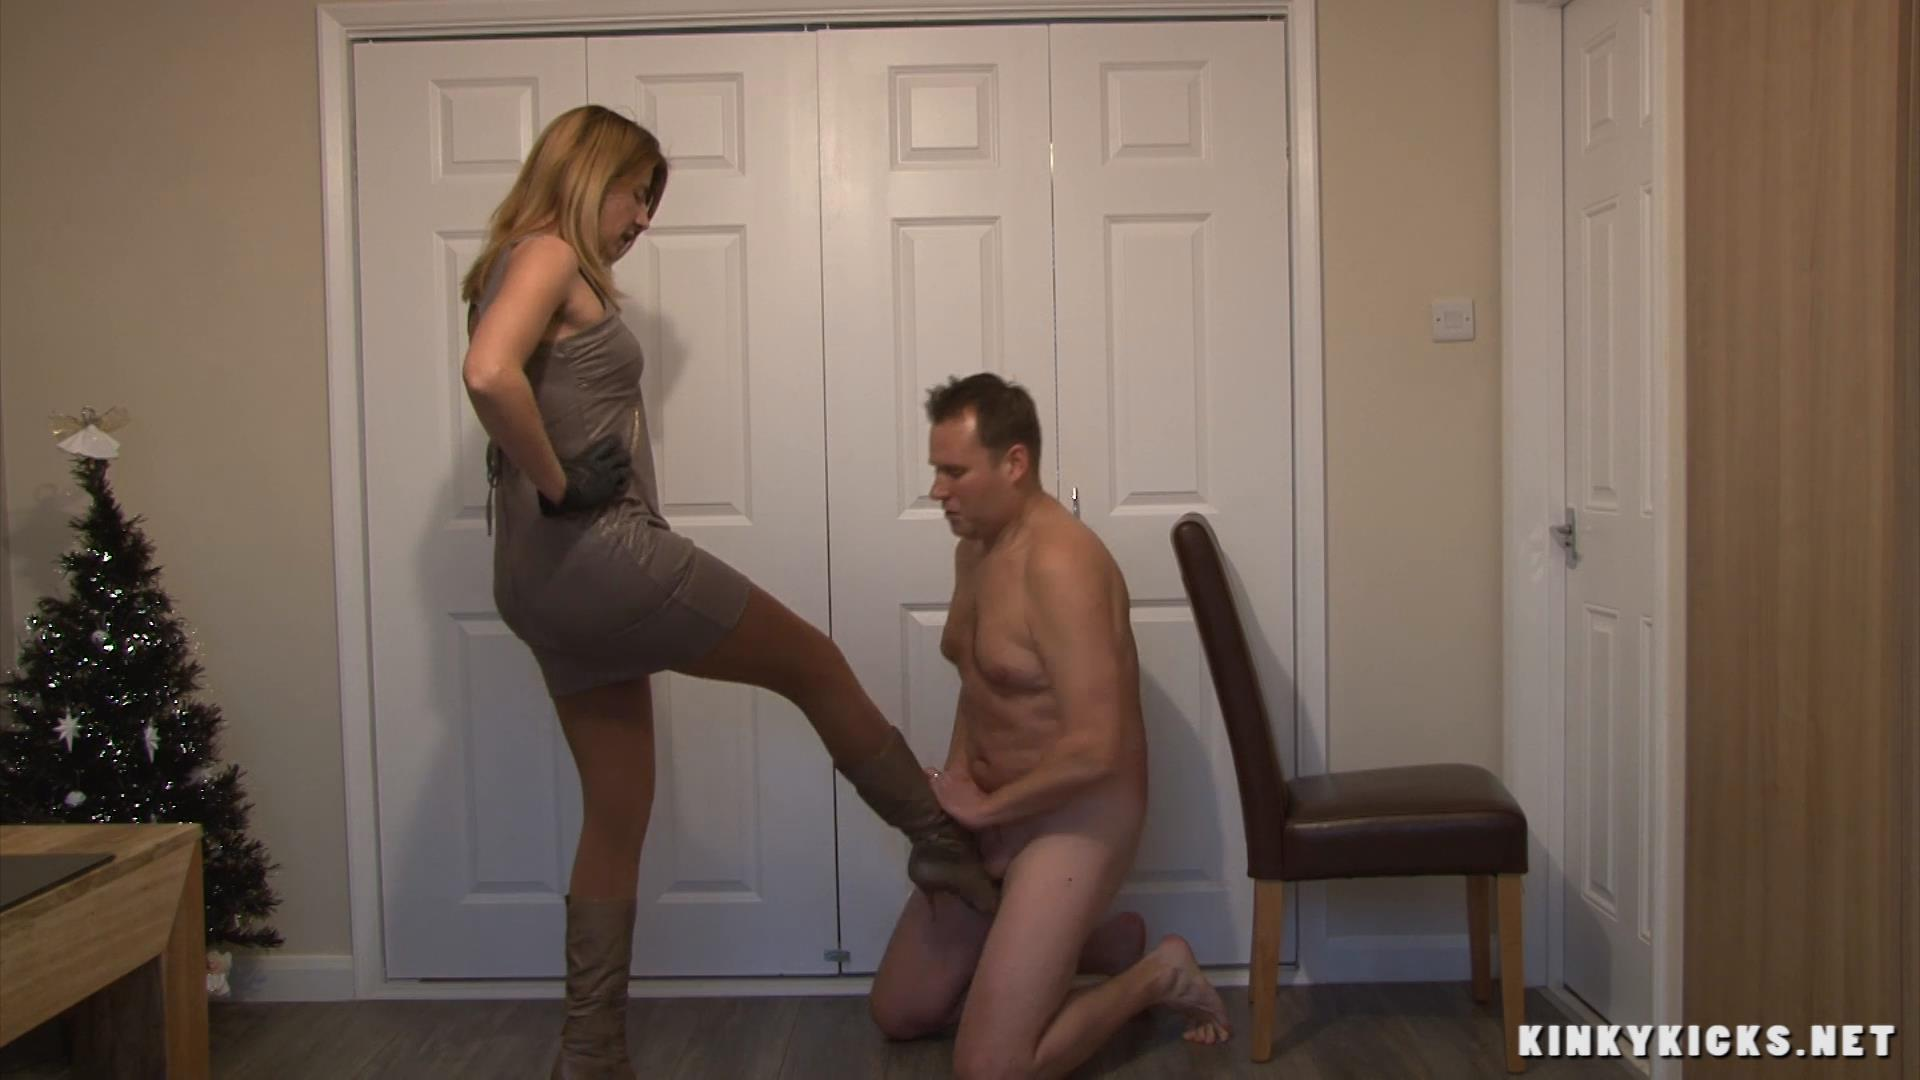 Miss Kat In Scene: Bad Boy - KINKYKICKS - FULL HD/1080p/MP4